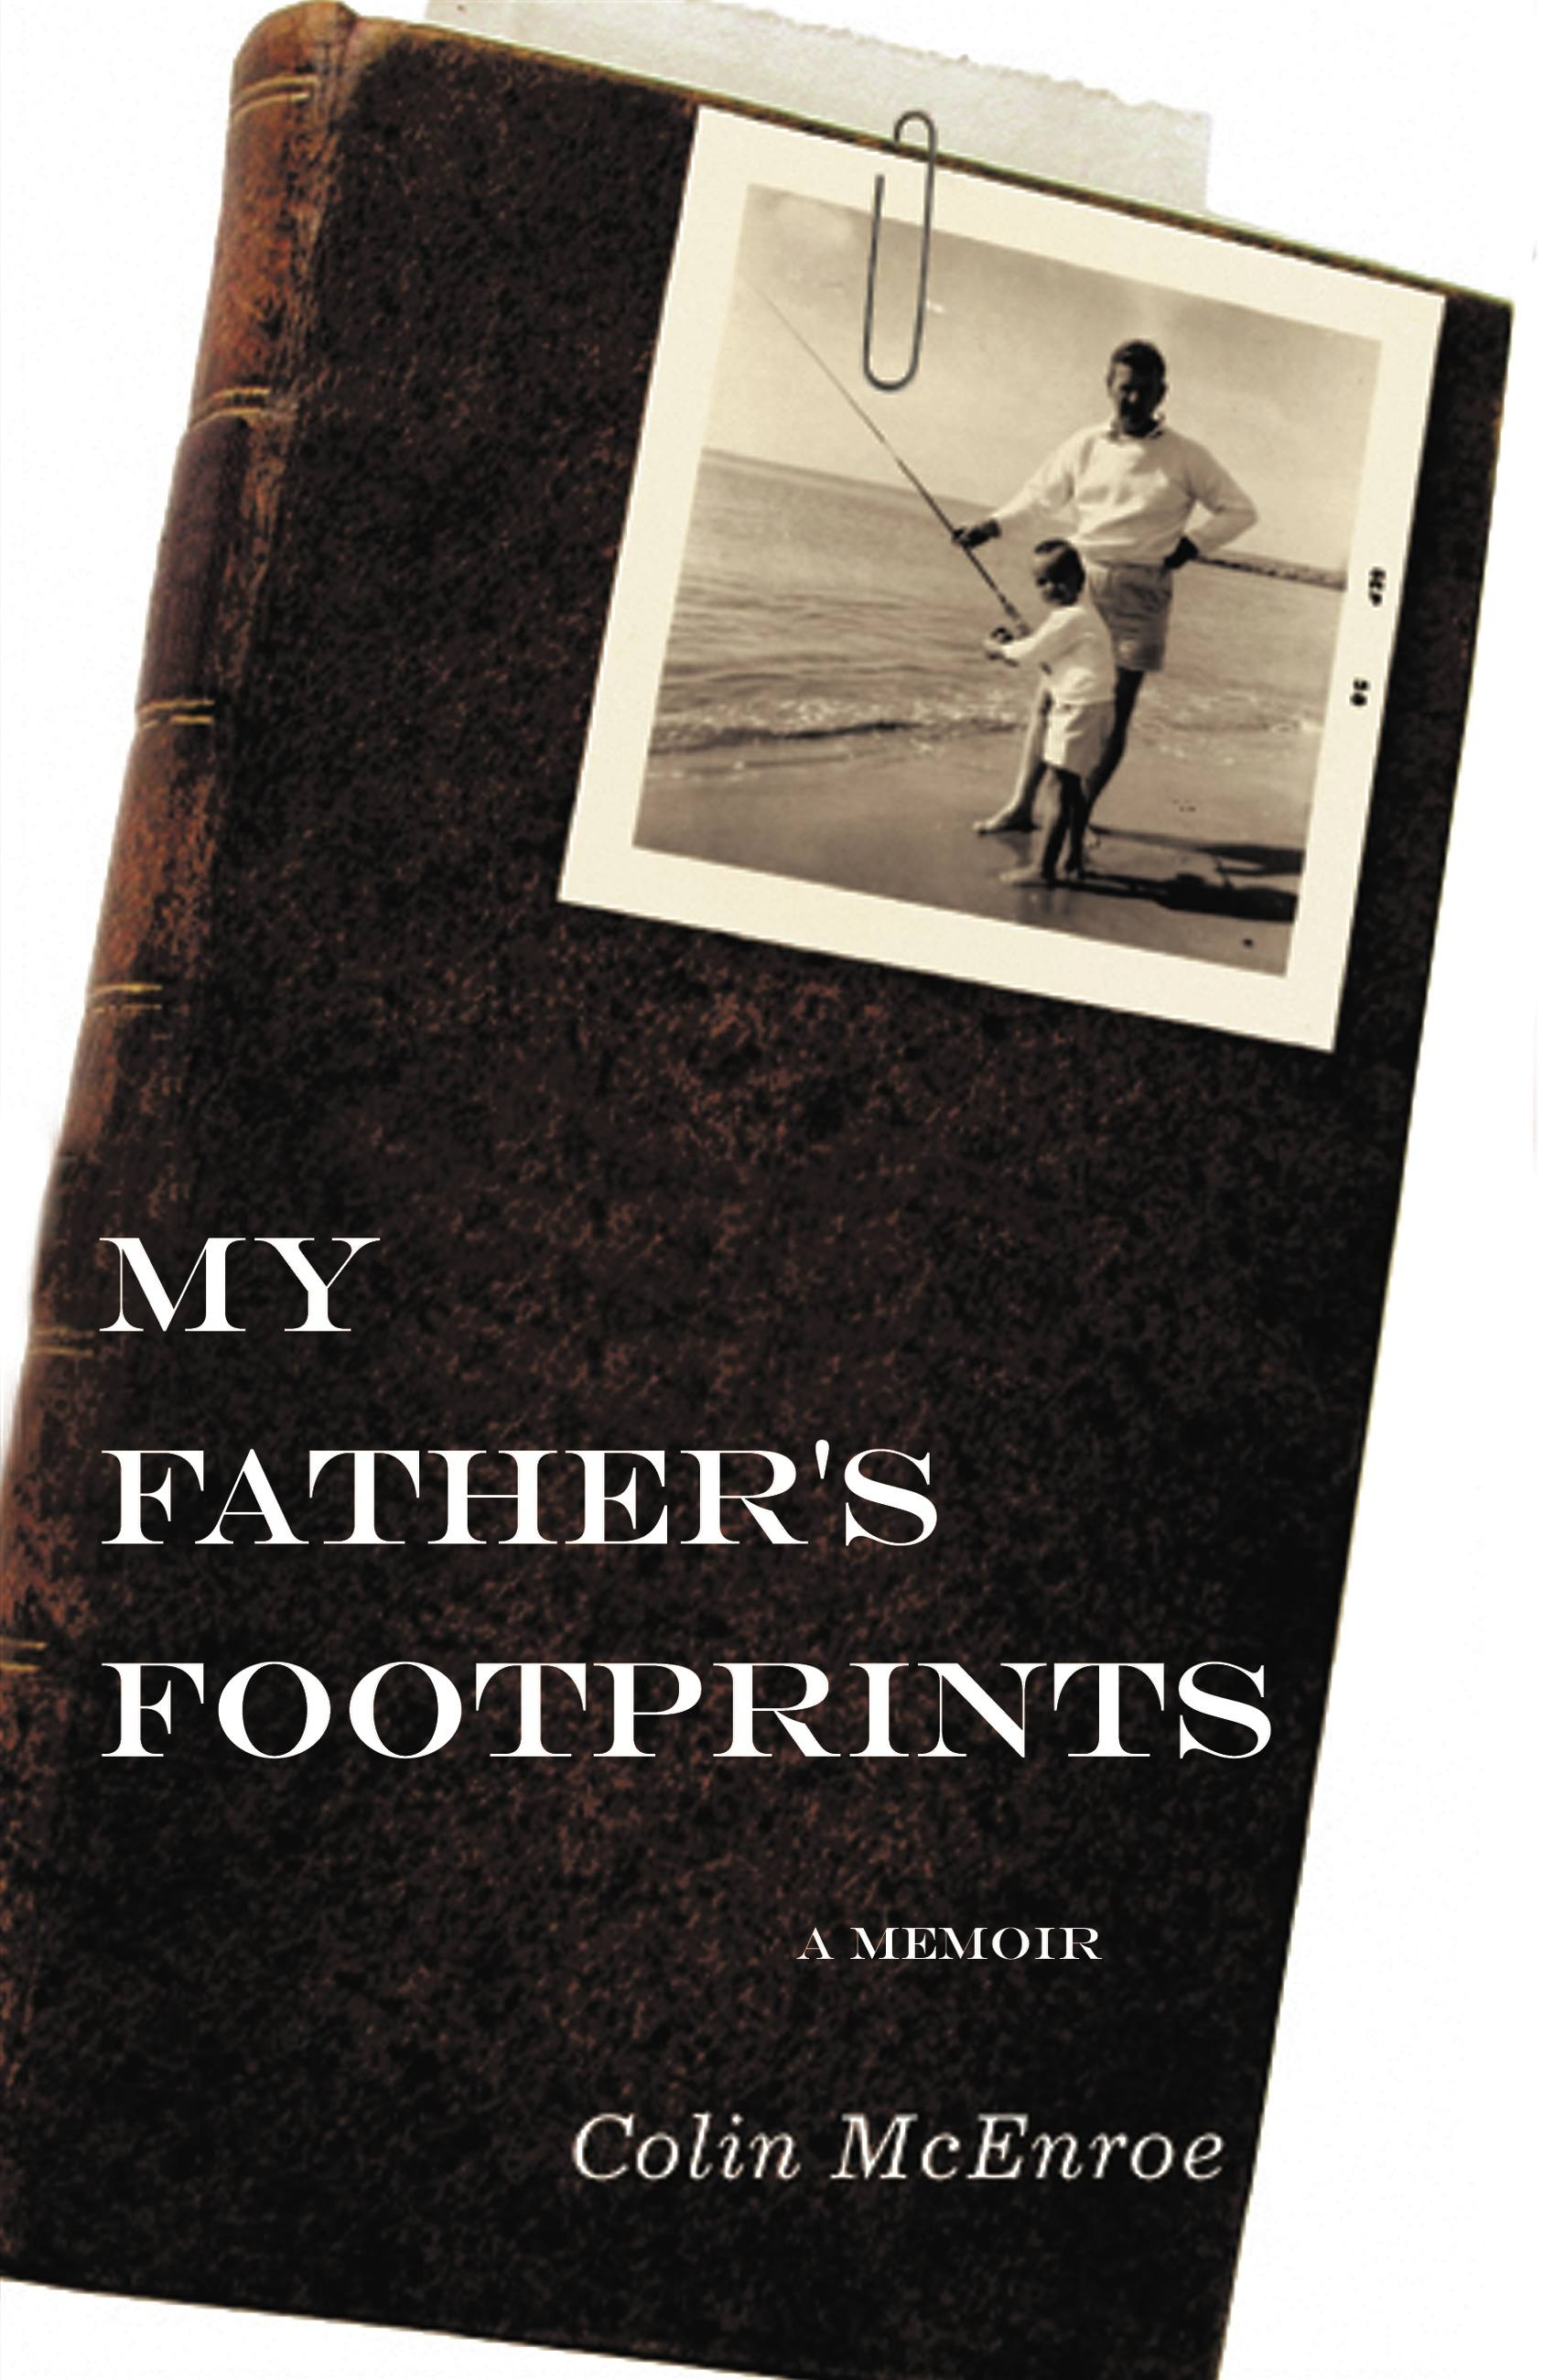 My Father's Footprints